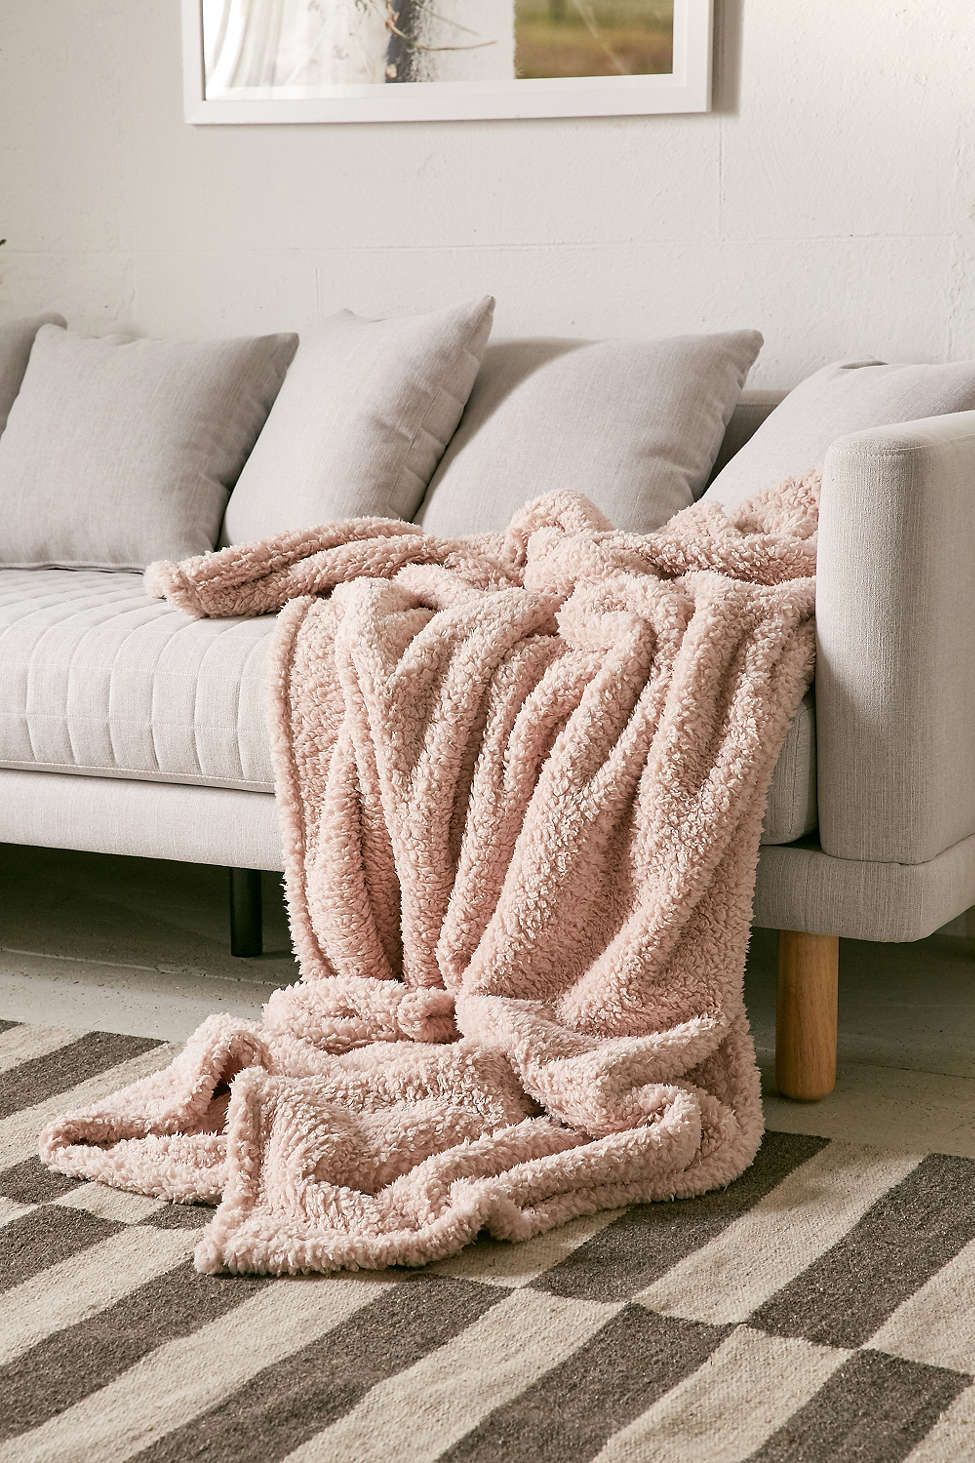 Amped Fleece Throw Blanket House Ideas In 2019 White